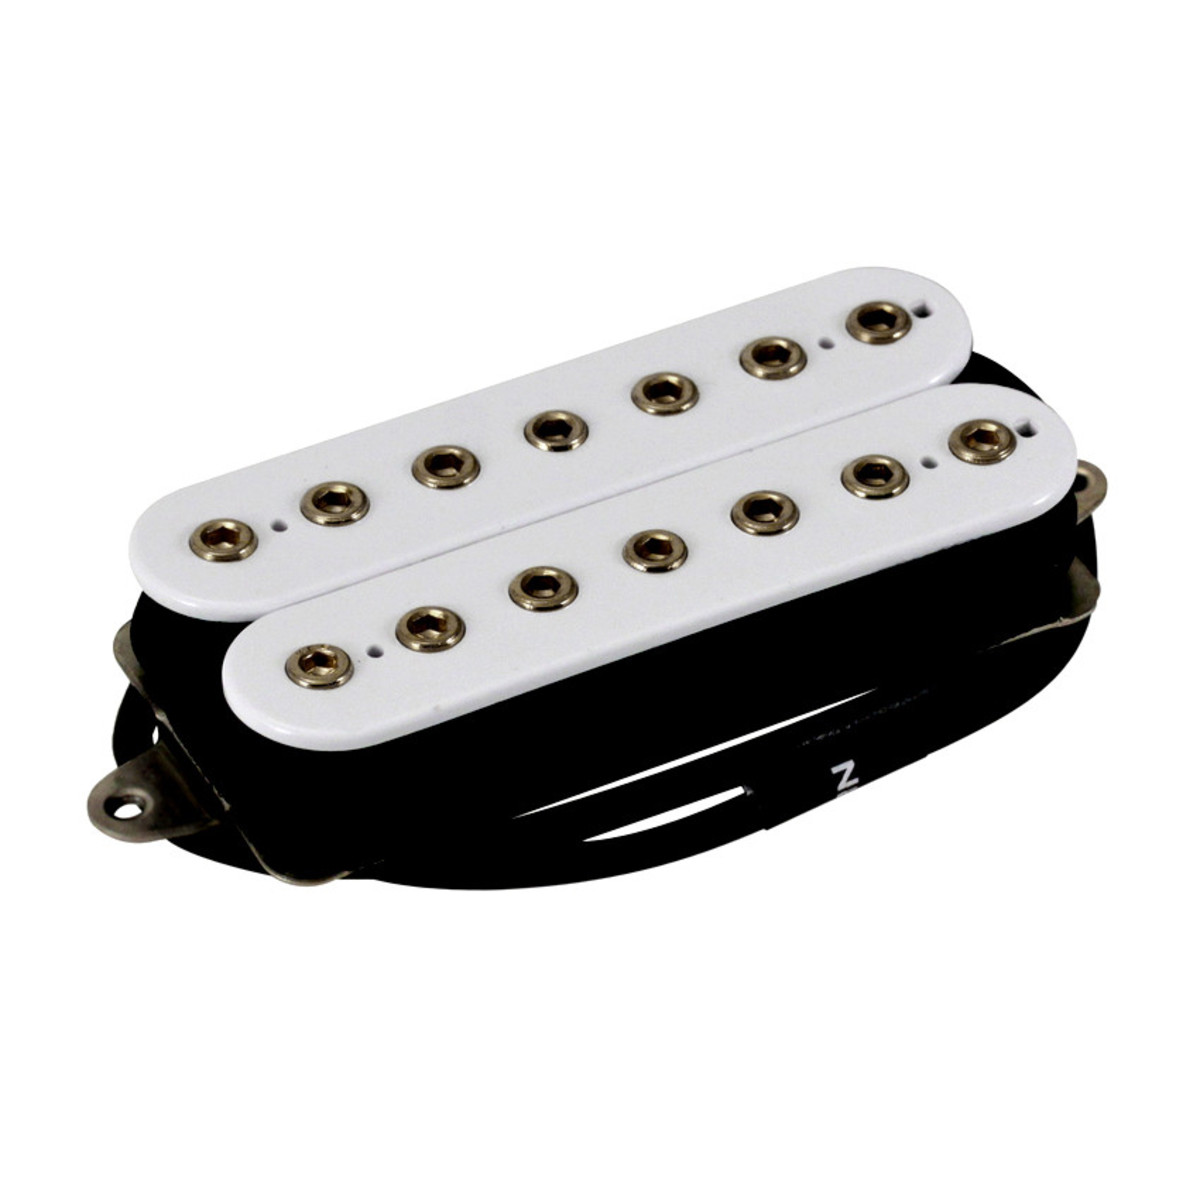 dimarzio dp704 evolution 7 string humbucker guitar pickup white at. Black Bedroom Furniture Sets. Home Design Ideas